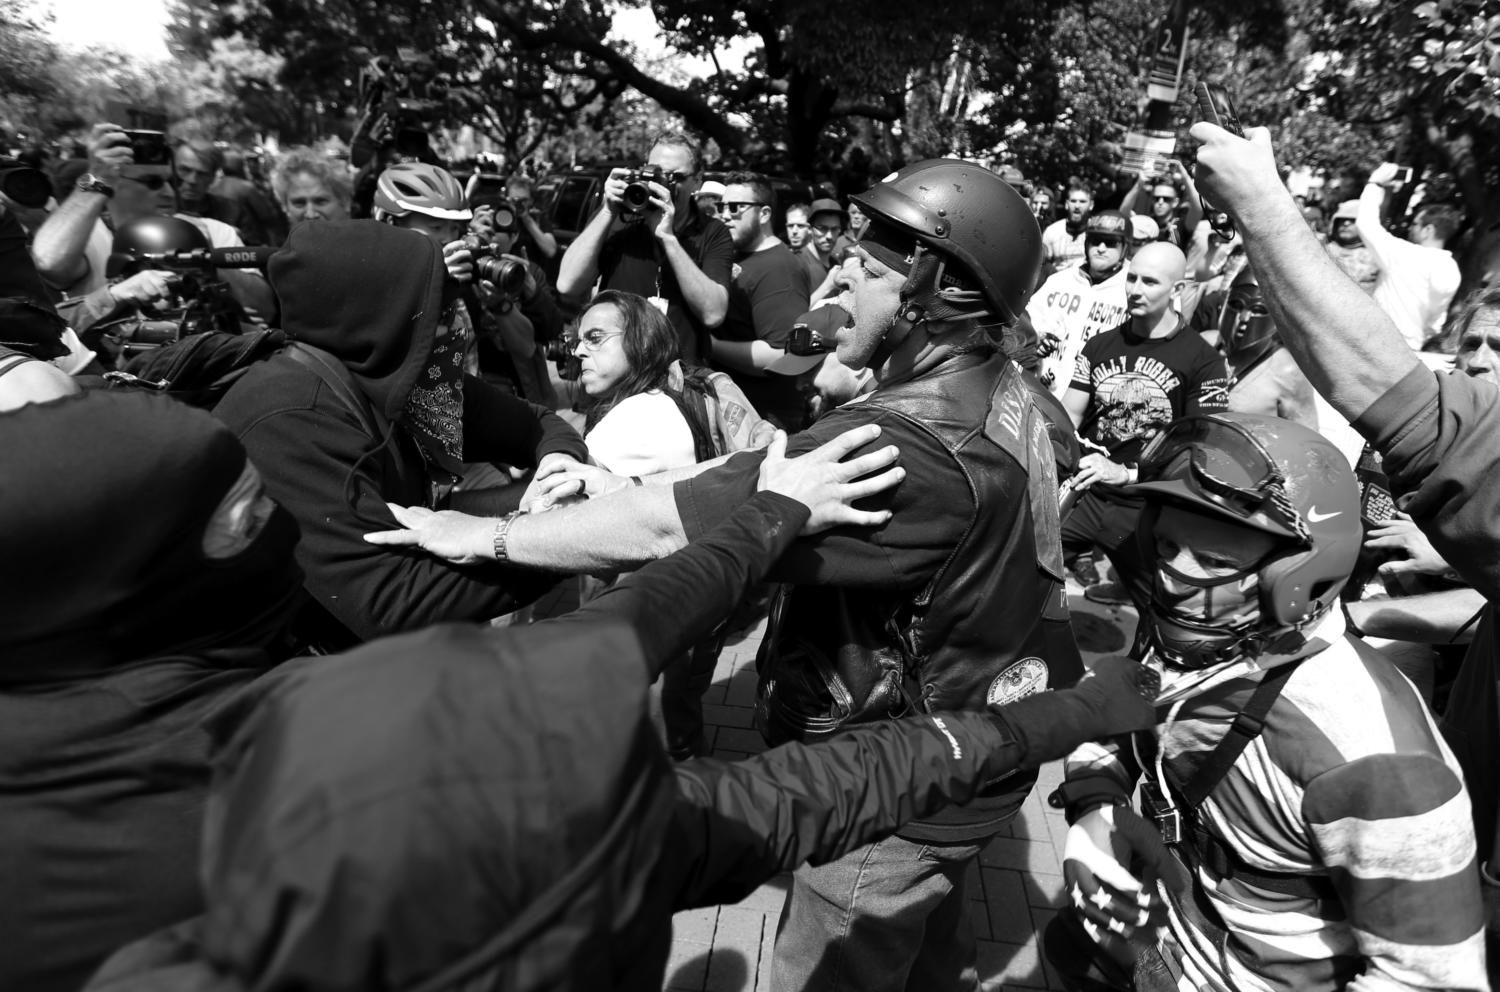 Can the social justice movement use violence?